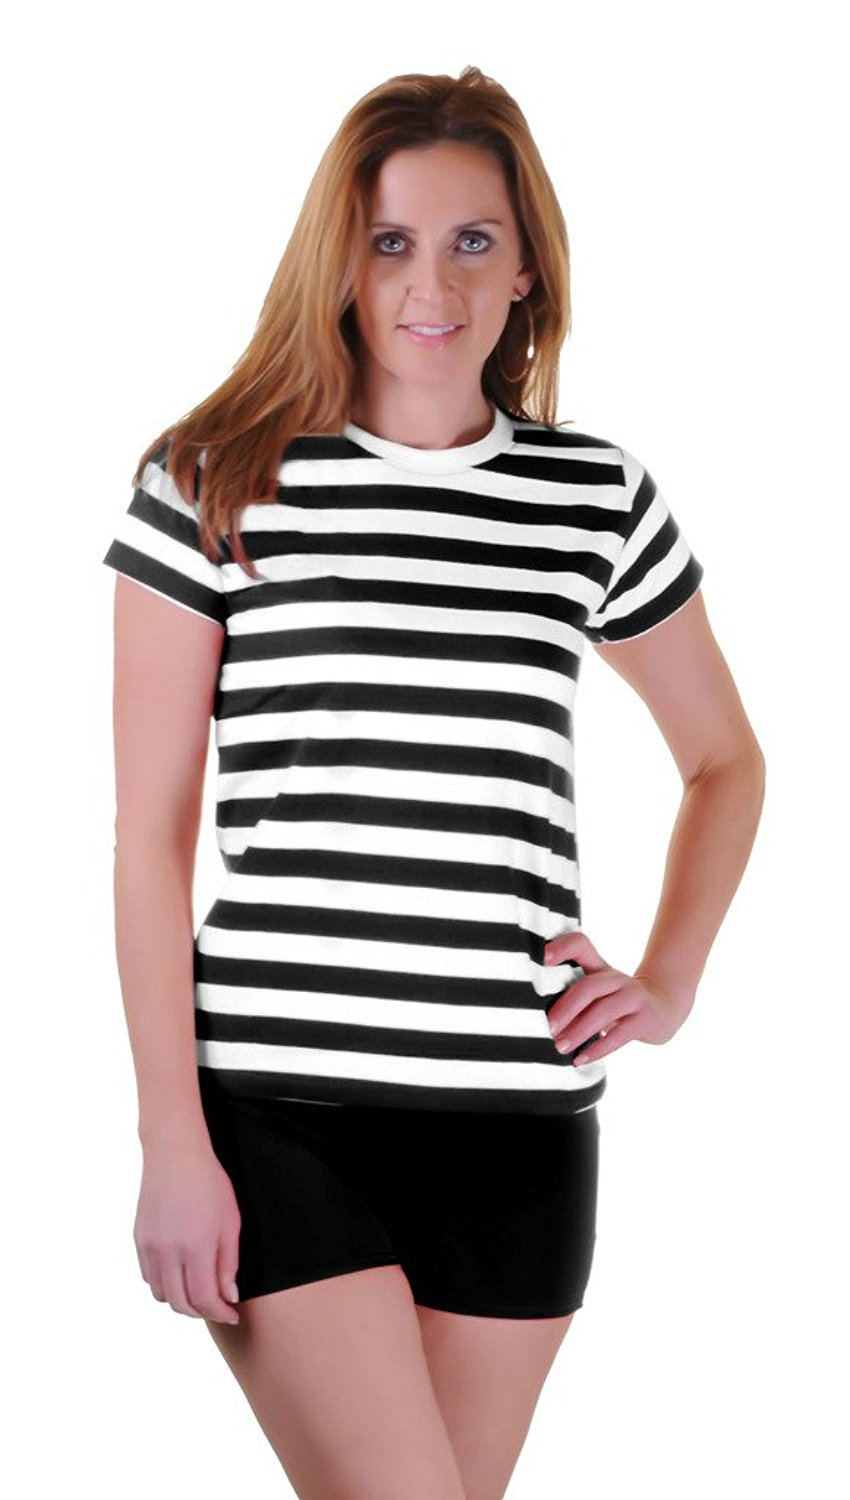 Rimi Hanger Womens Black Red Blue And White Striped Book Week T Shirt Fancy Top Lot (S, M, L, XL)